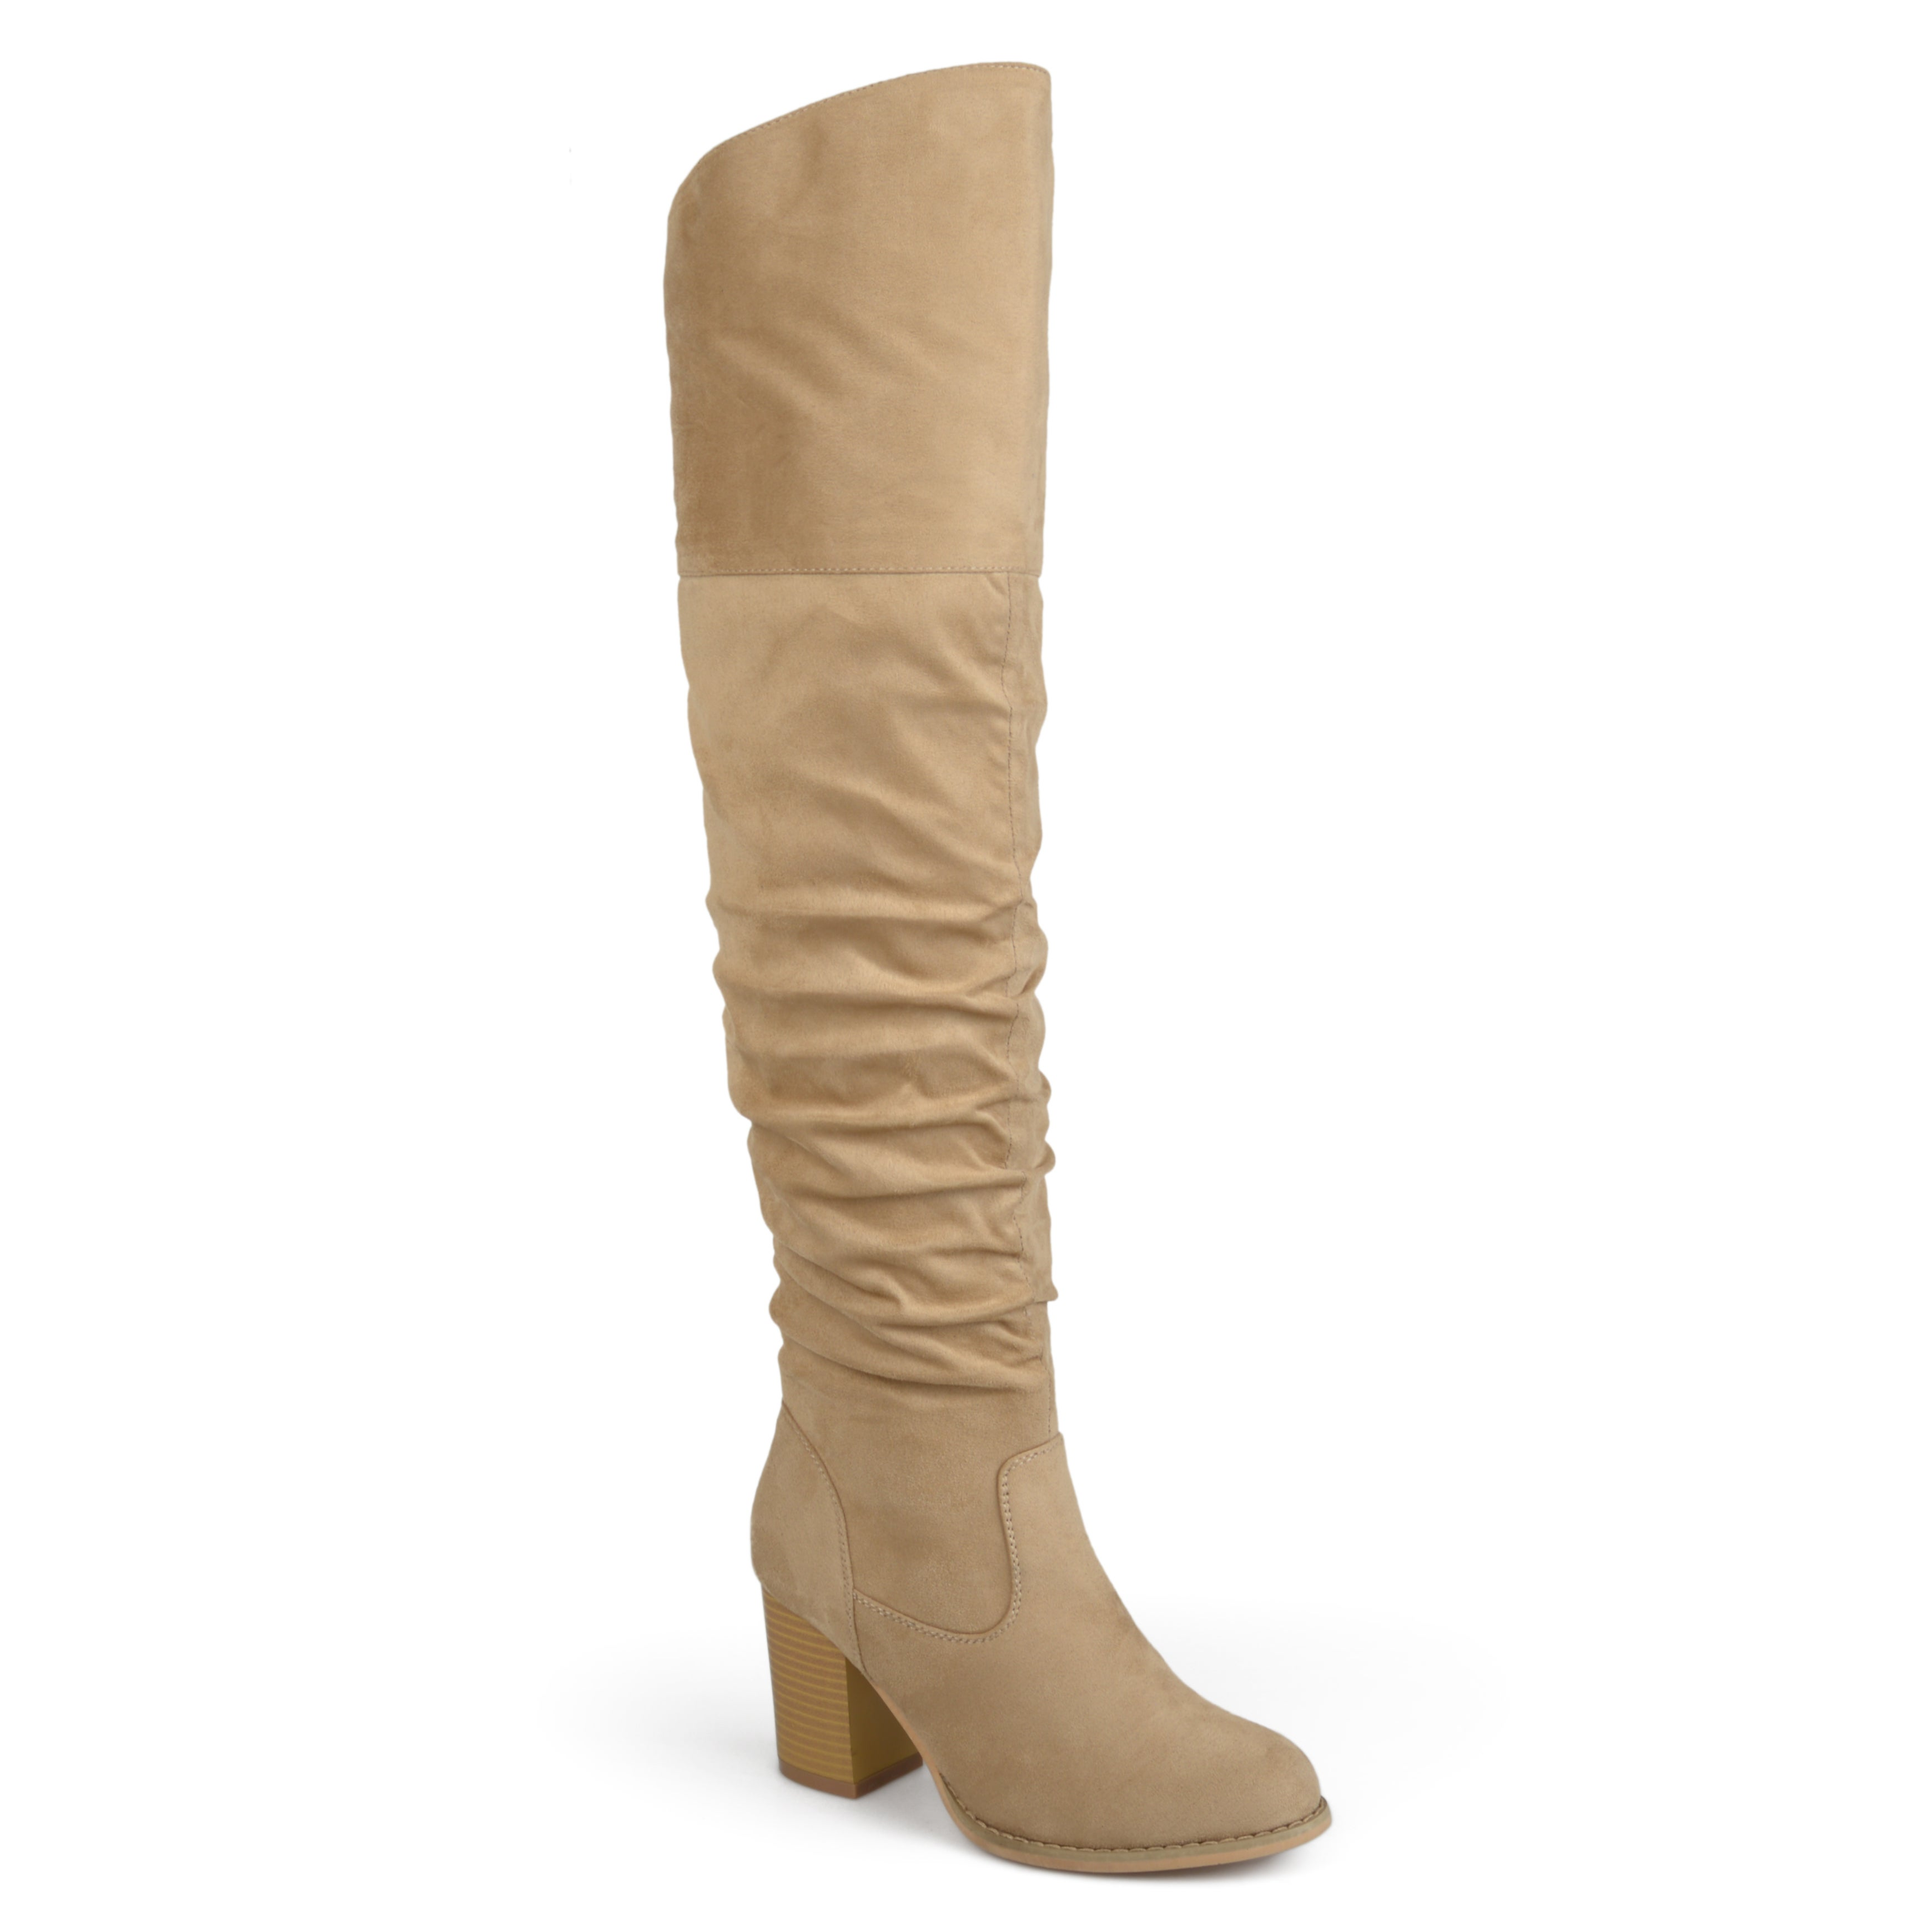 49e603753bc2 Journee Collection Women s  Kaison  Regular Wide Calf and Extra Wide Calf  Over-the-knee Ruched Stacked Heel Boots